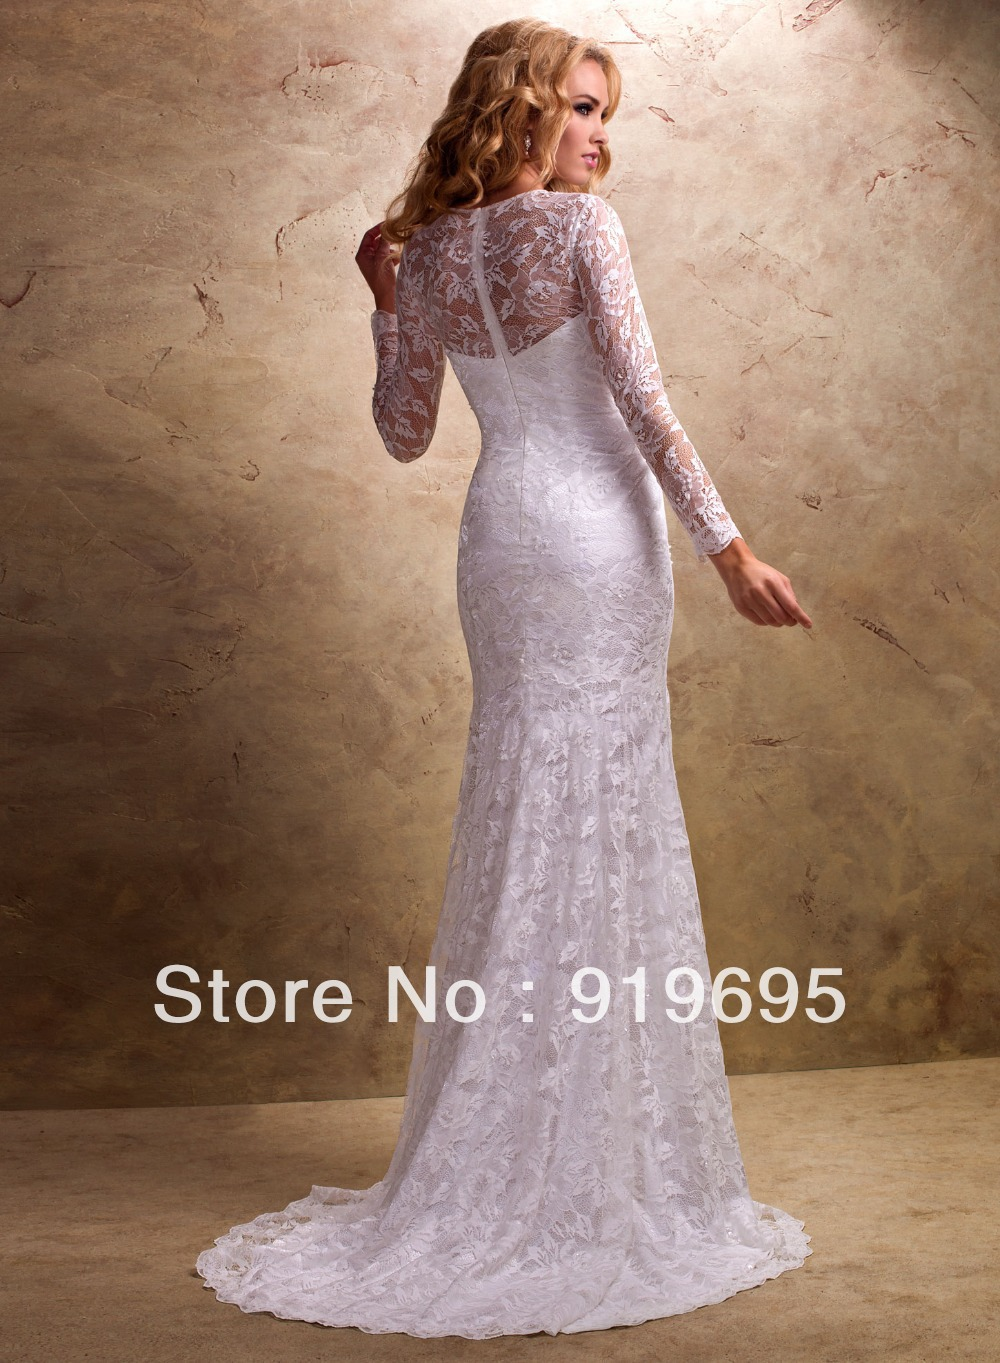 bodycon dress appropriate for wedding bodycon wedding dress Wedding Anniversary Outfits For Couples To Steal The Show